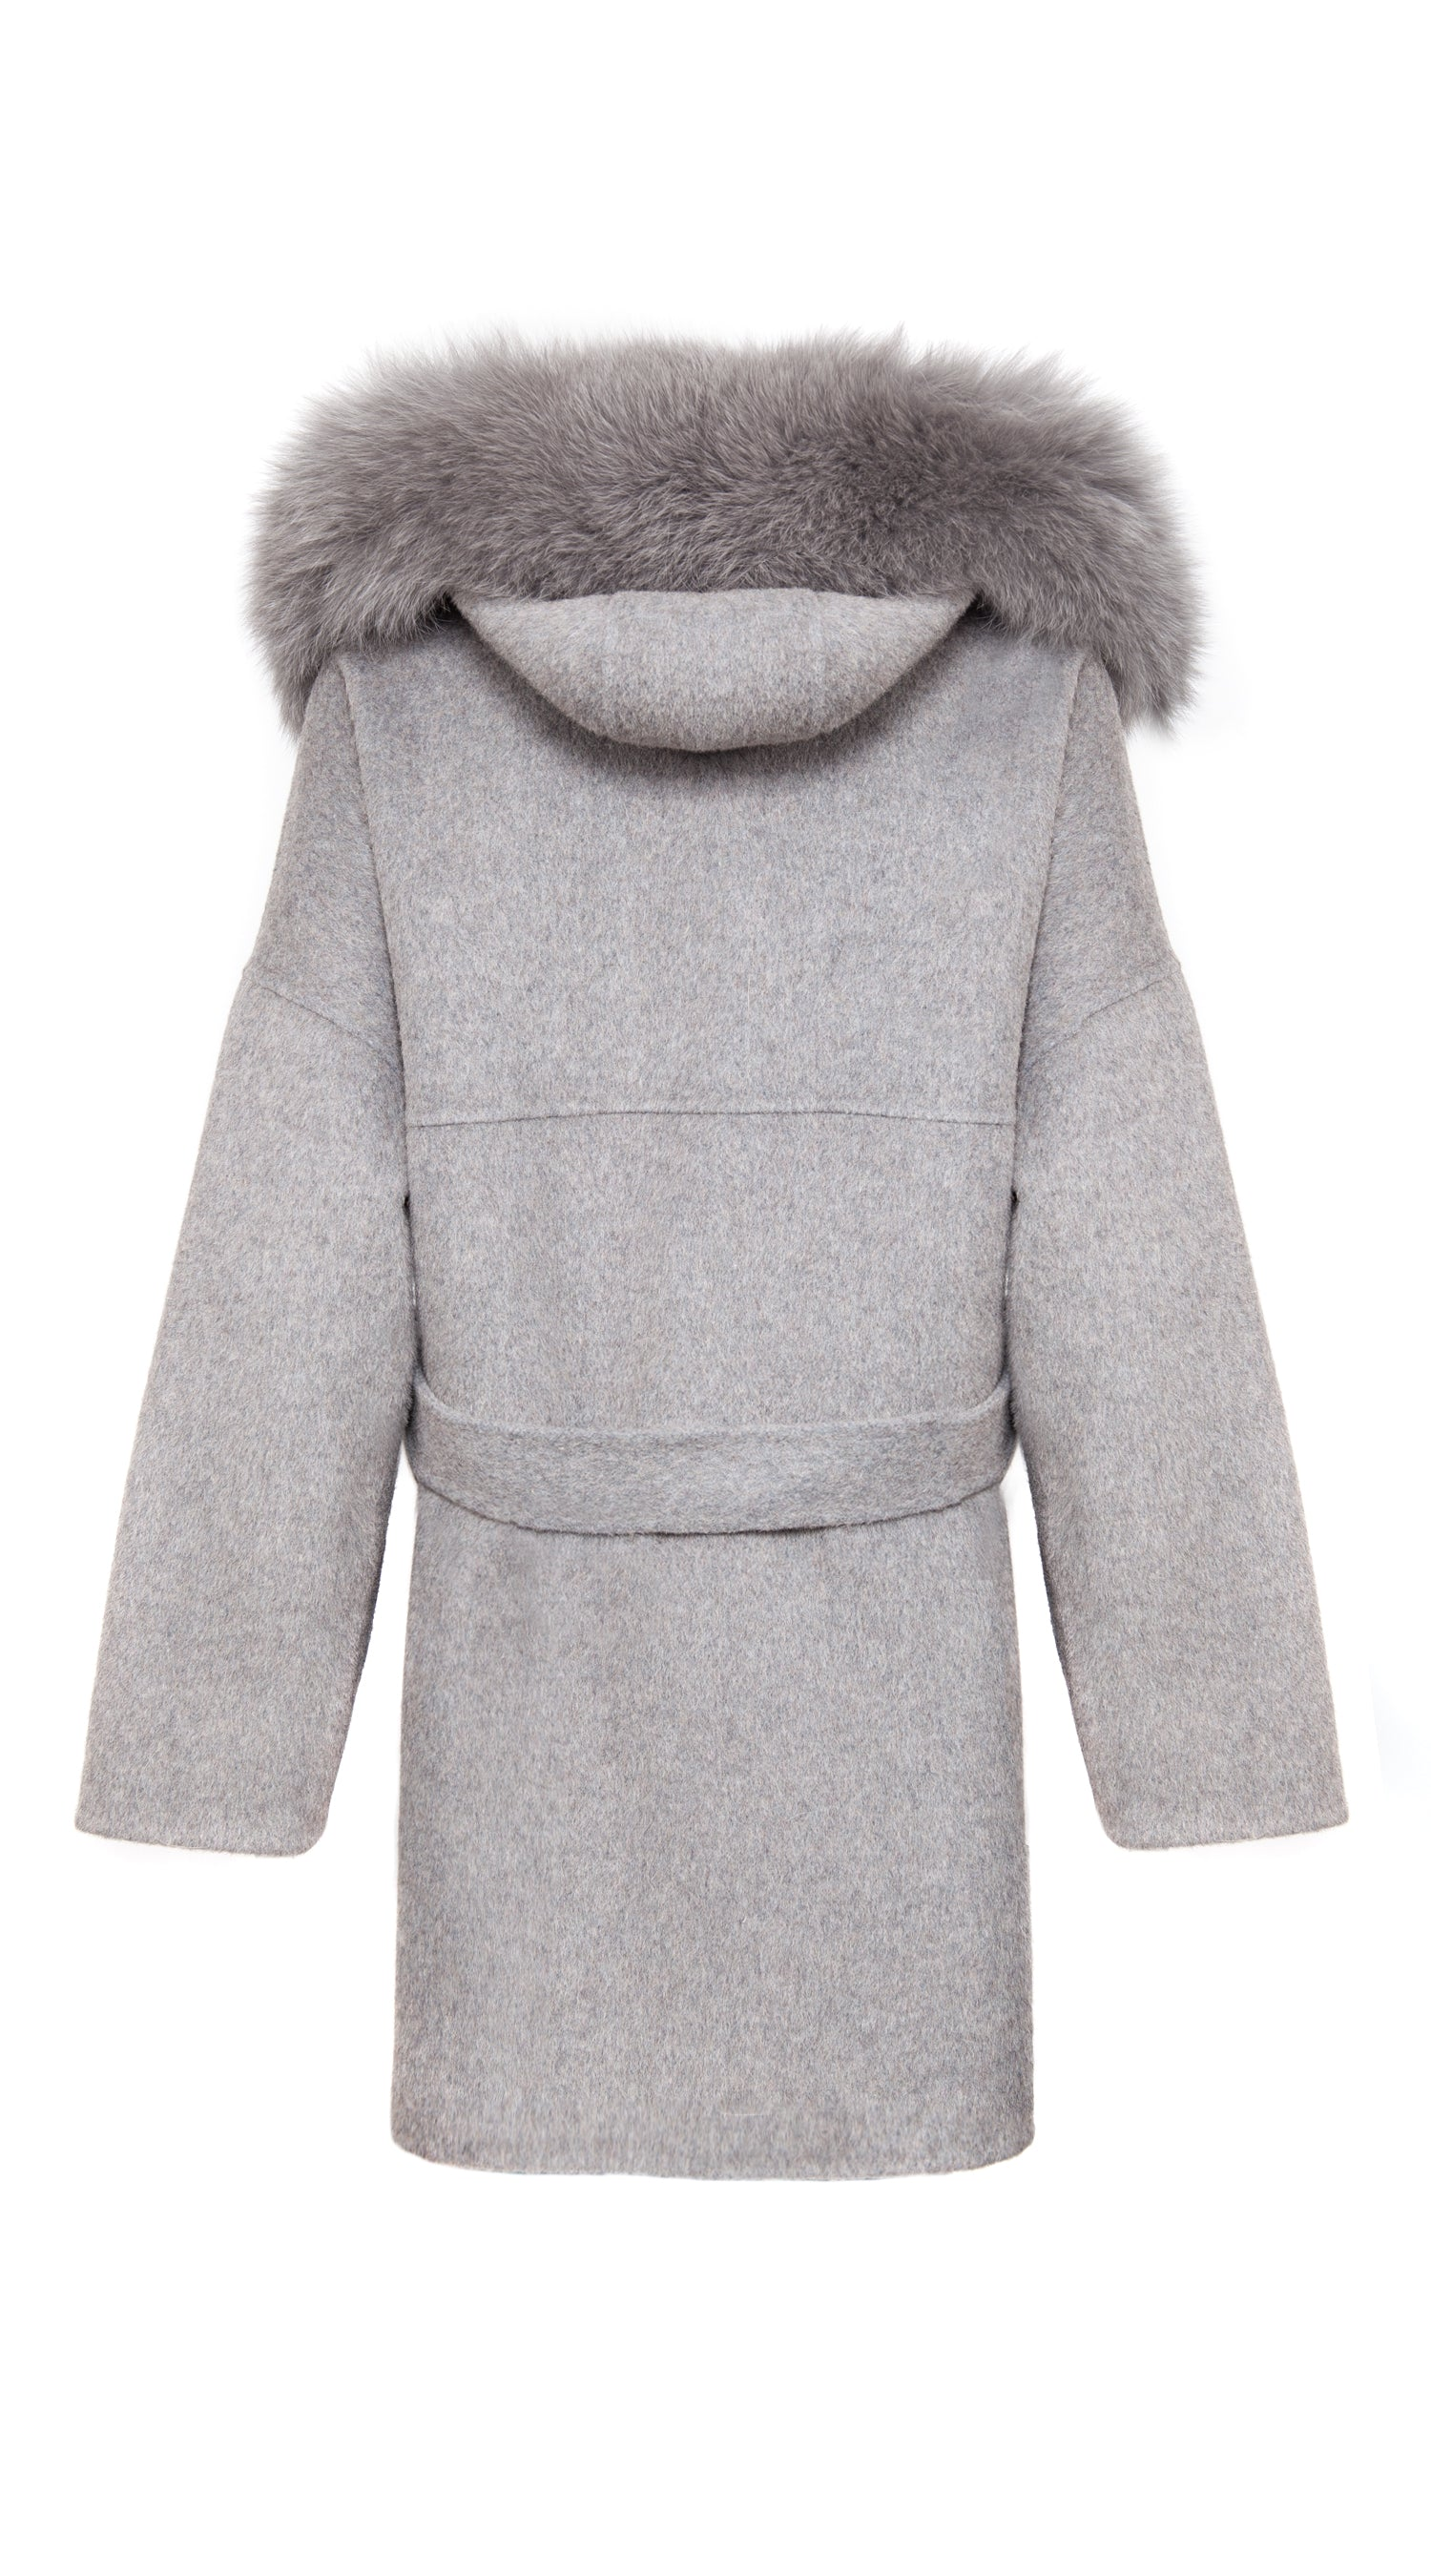 Cashmere & Fox Fur Belted Coat - Grey